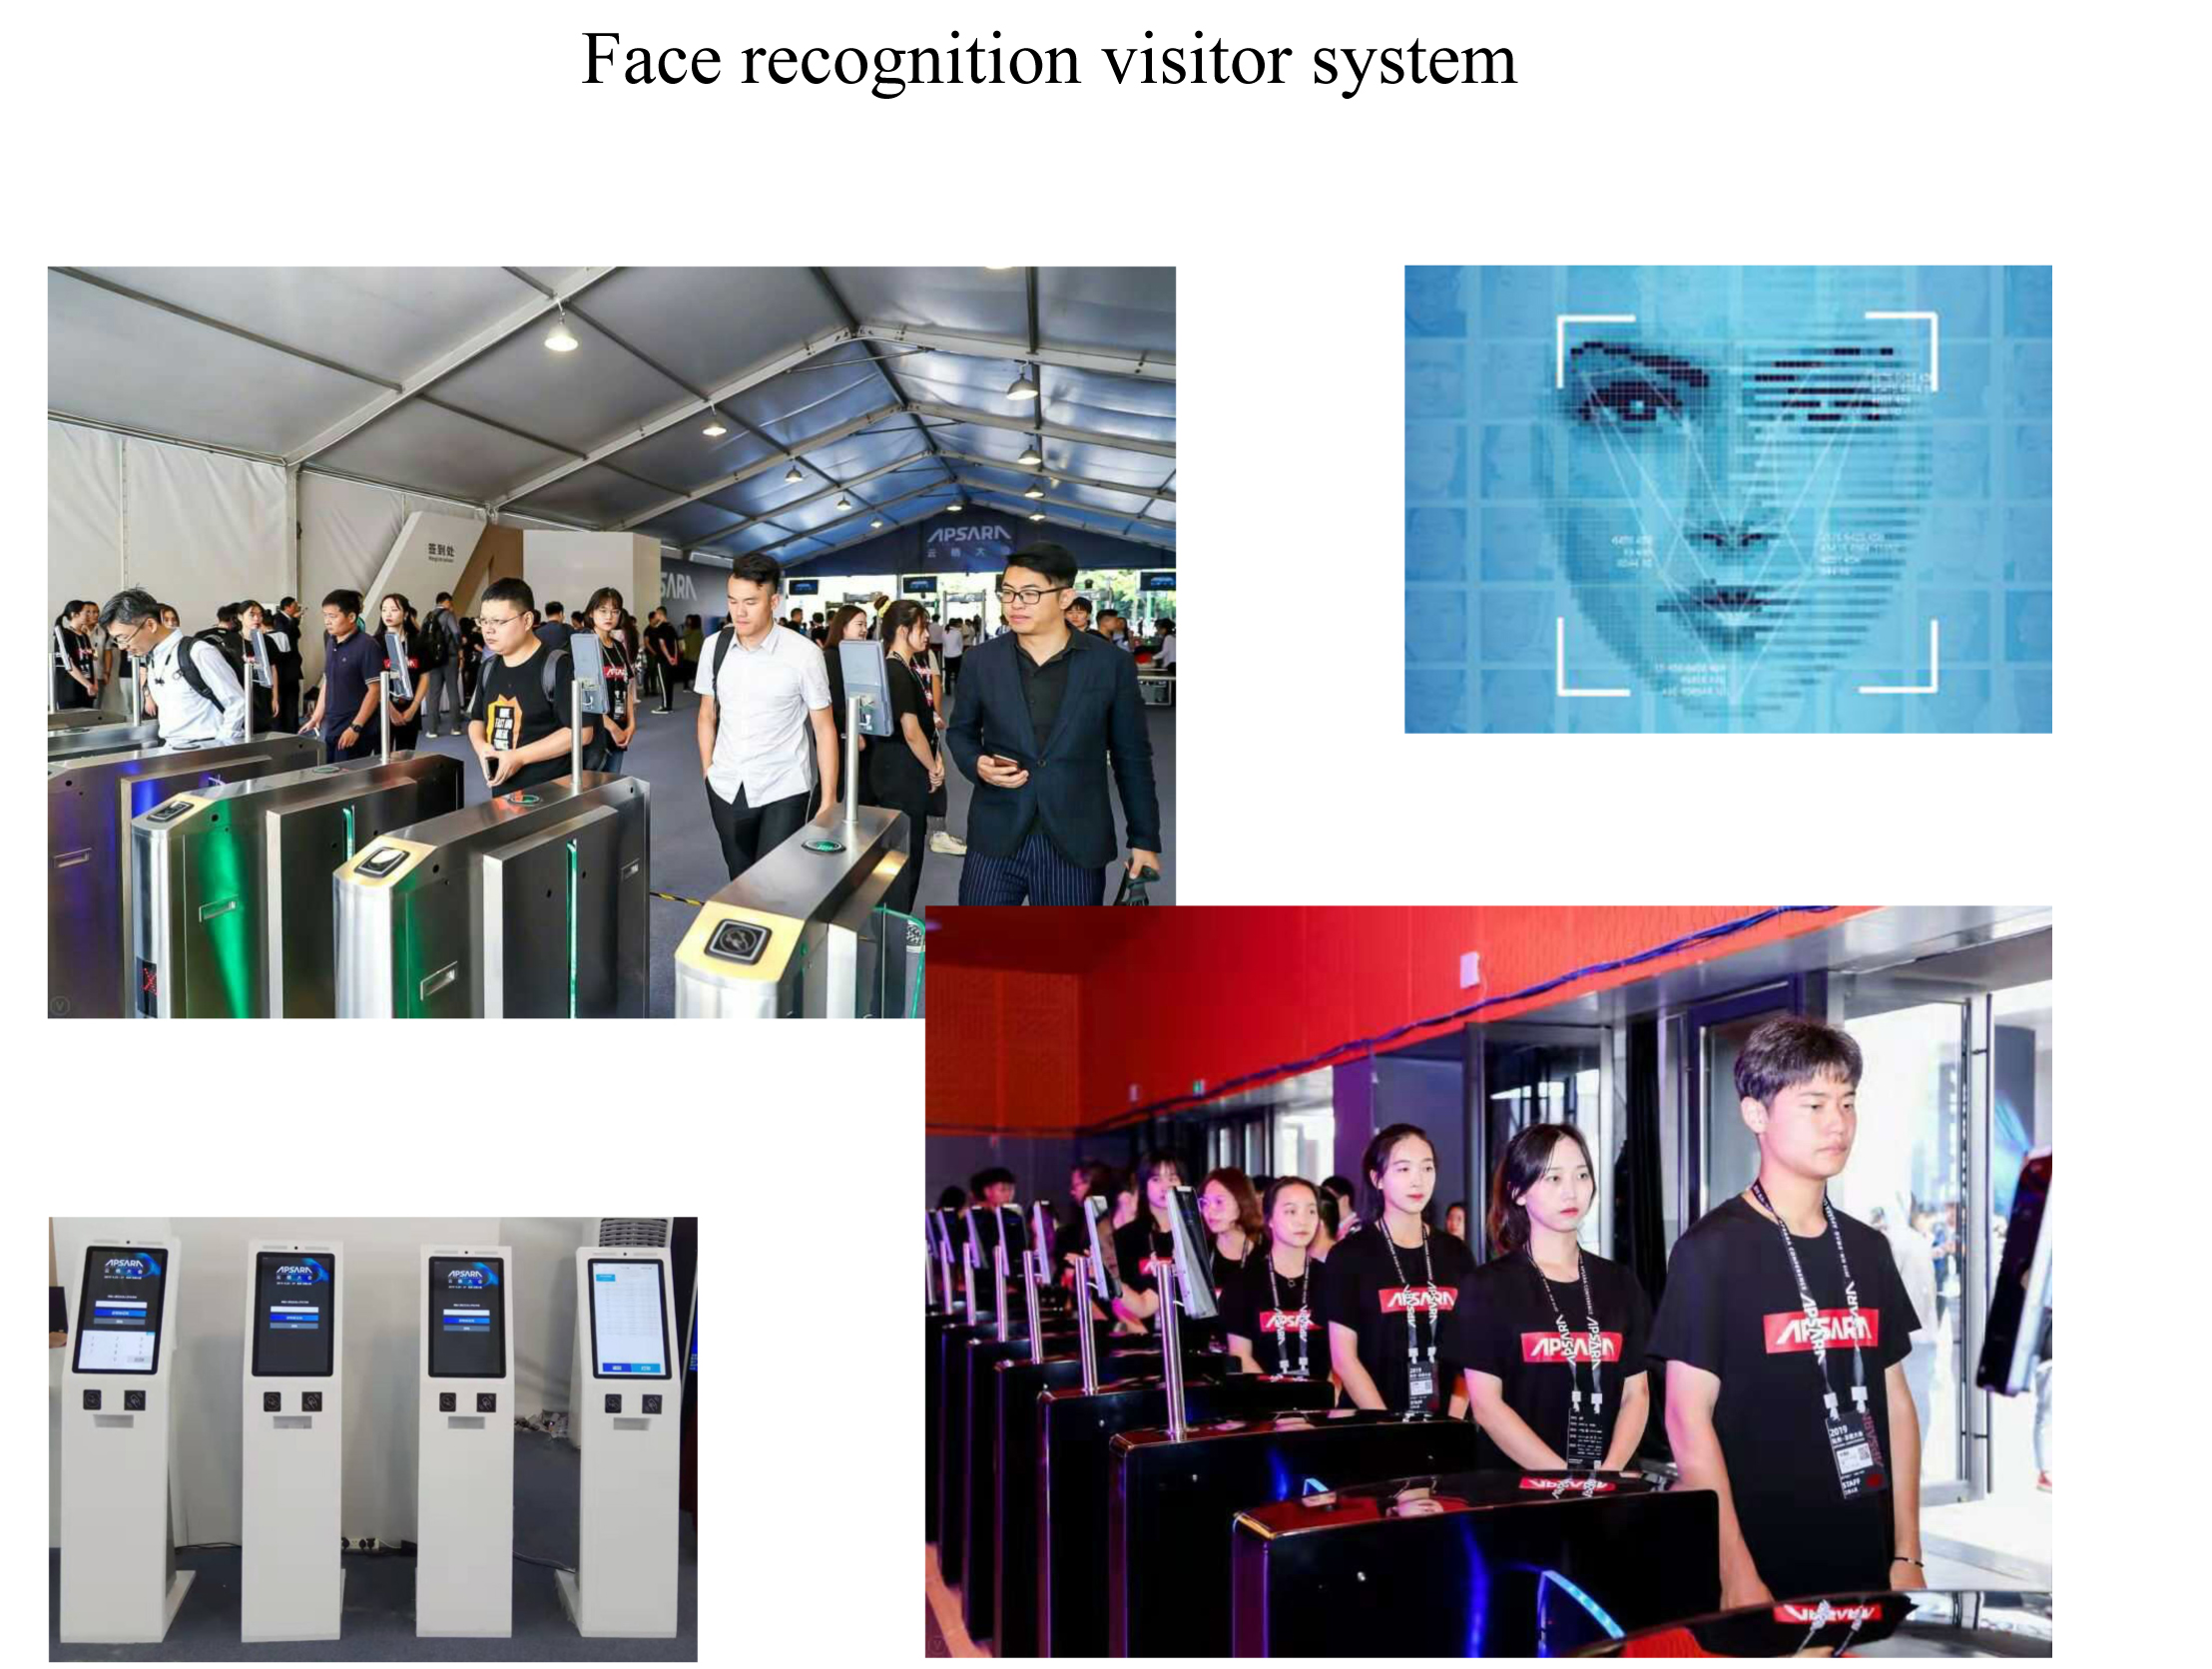 Facerecognitionvisitorsystem-1